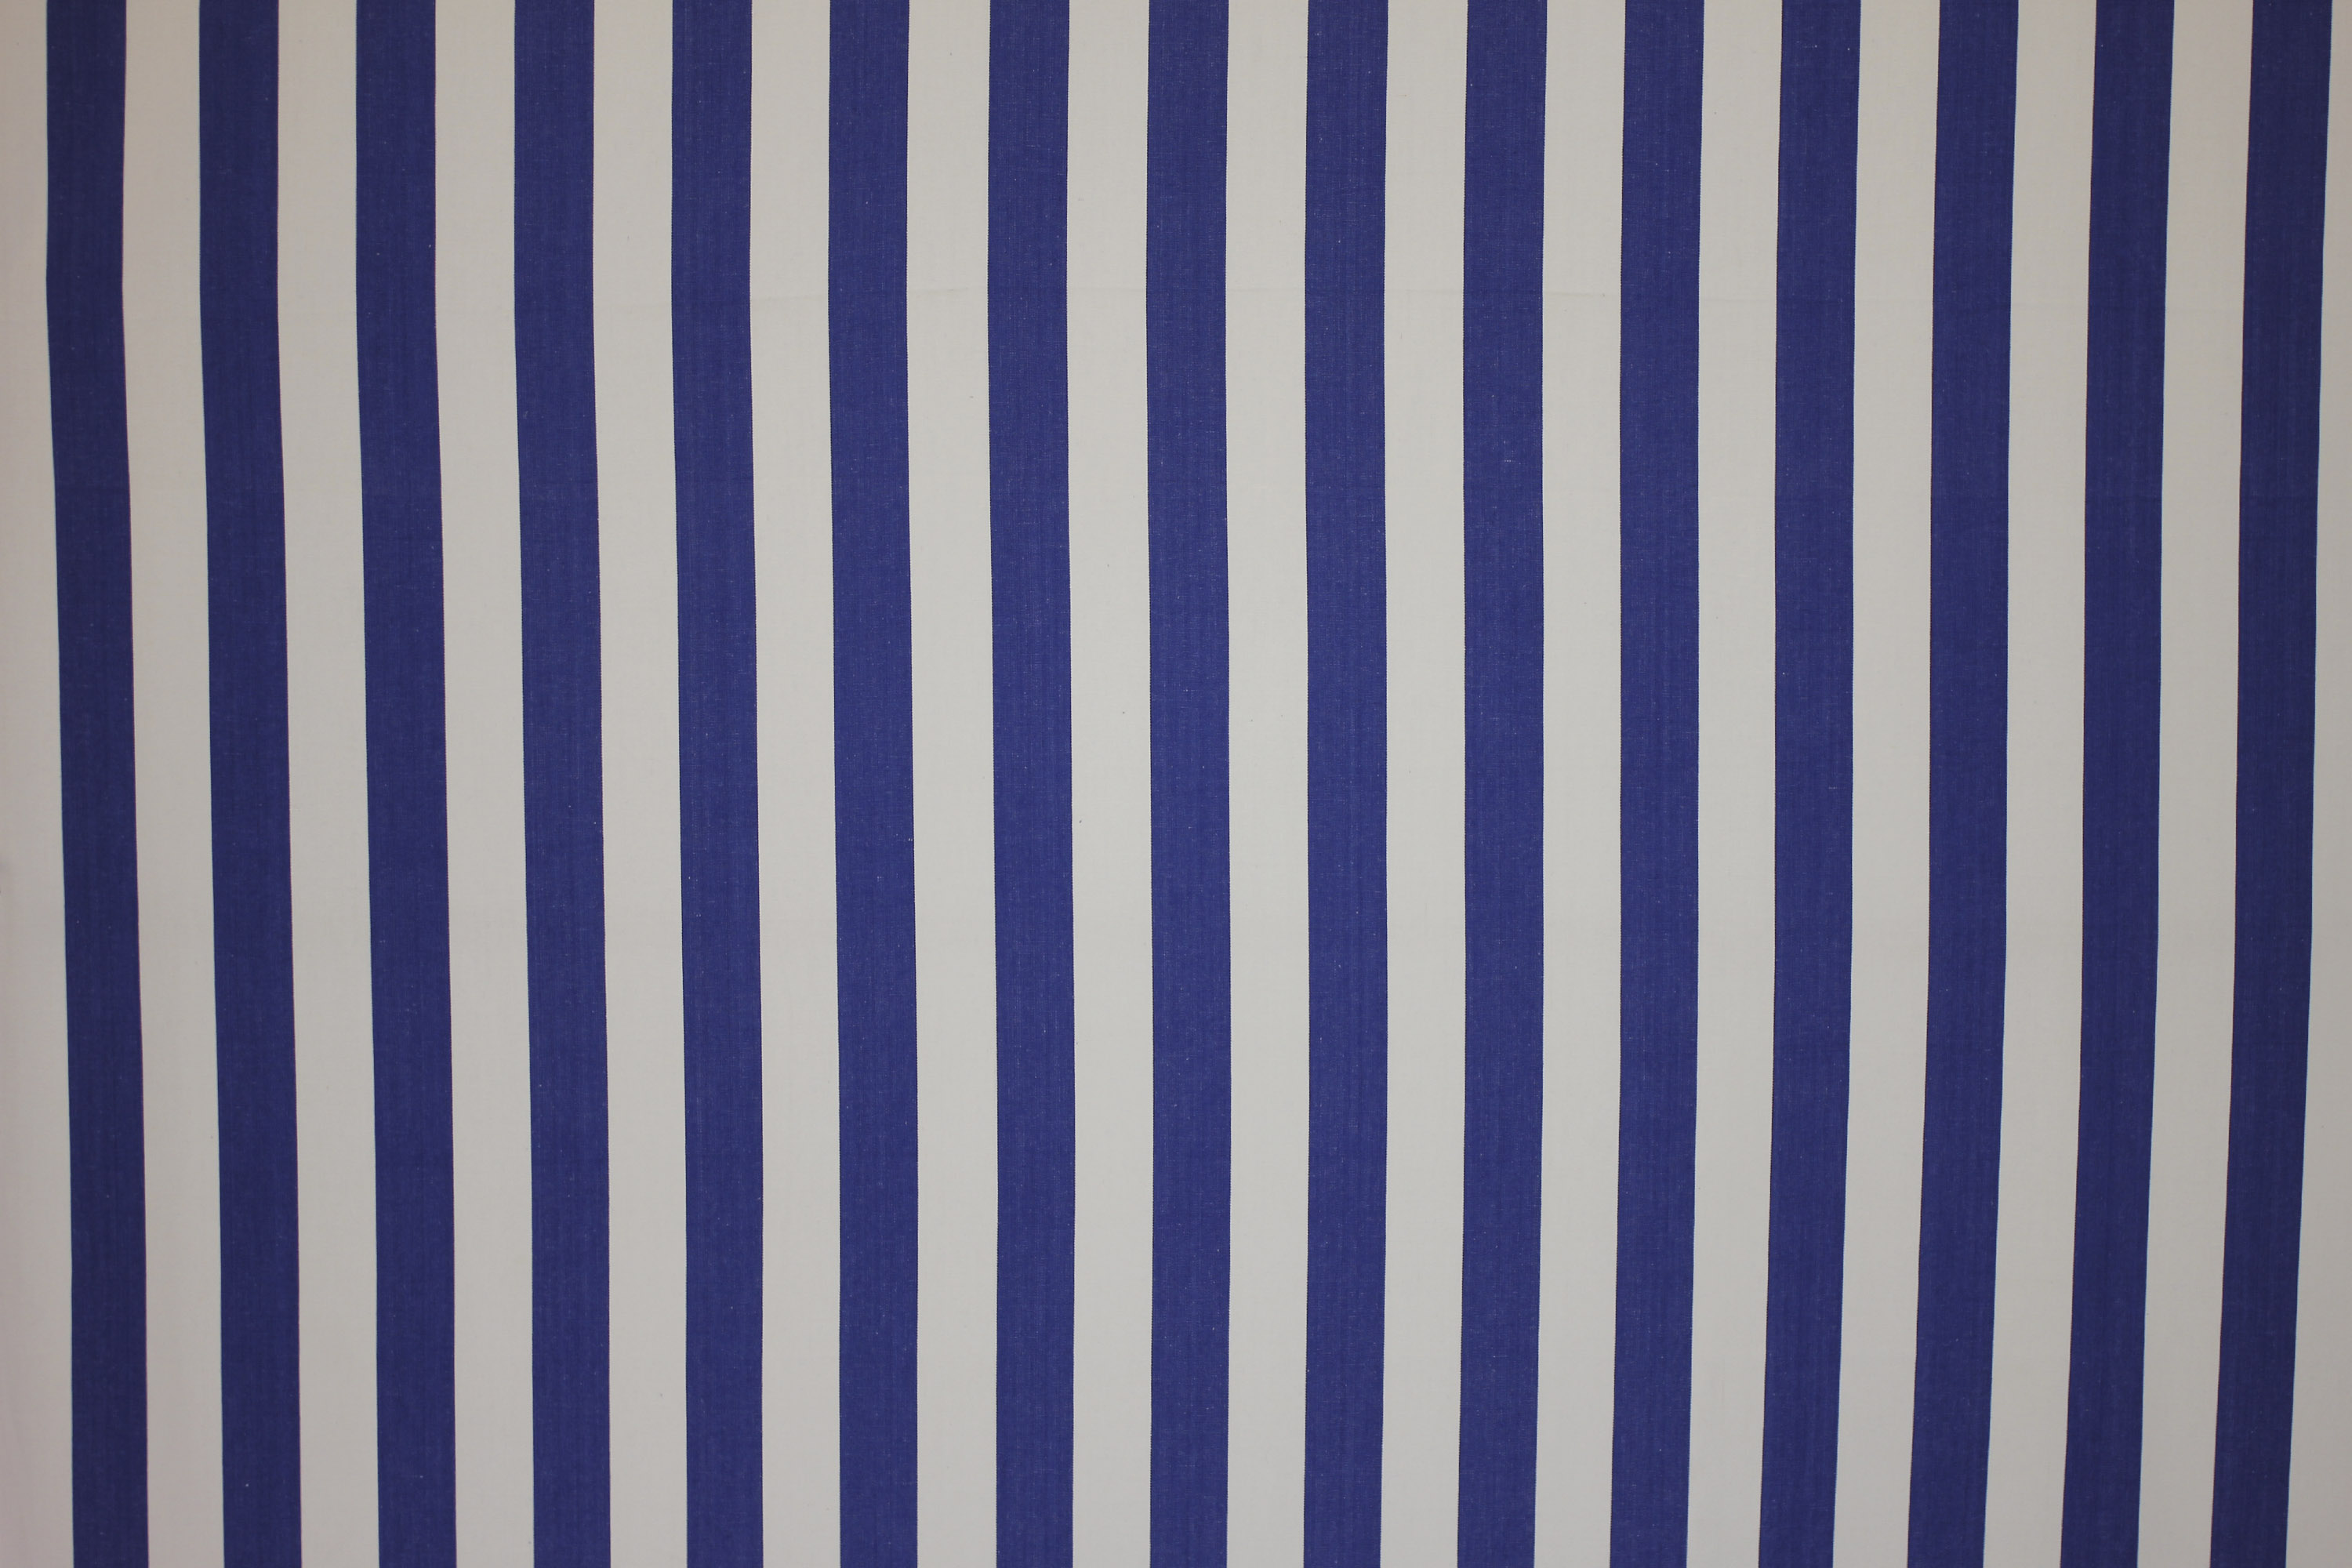 Soccer Blue and White Striped Fabric